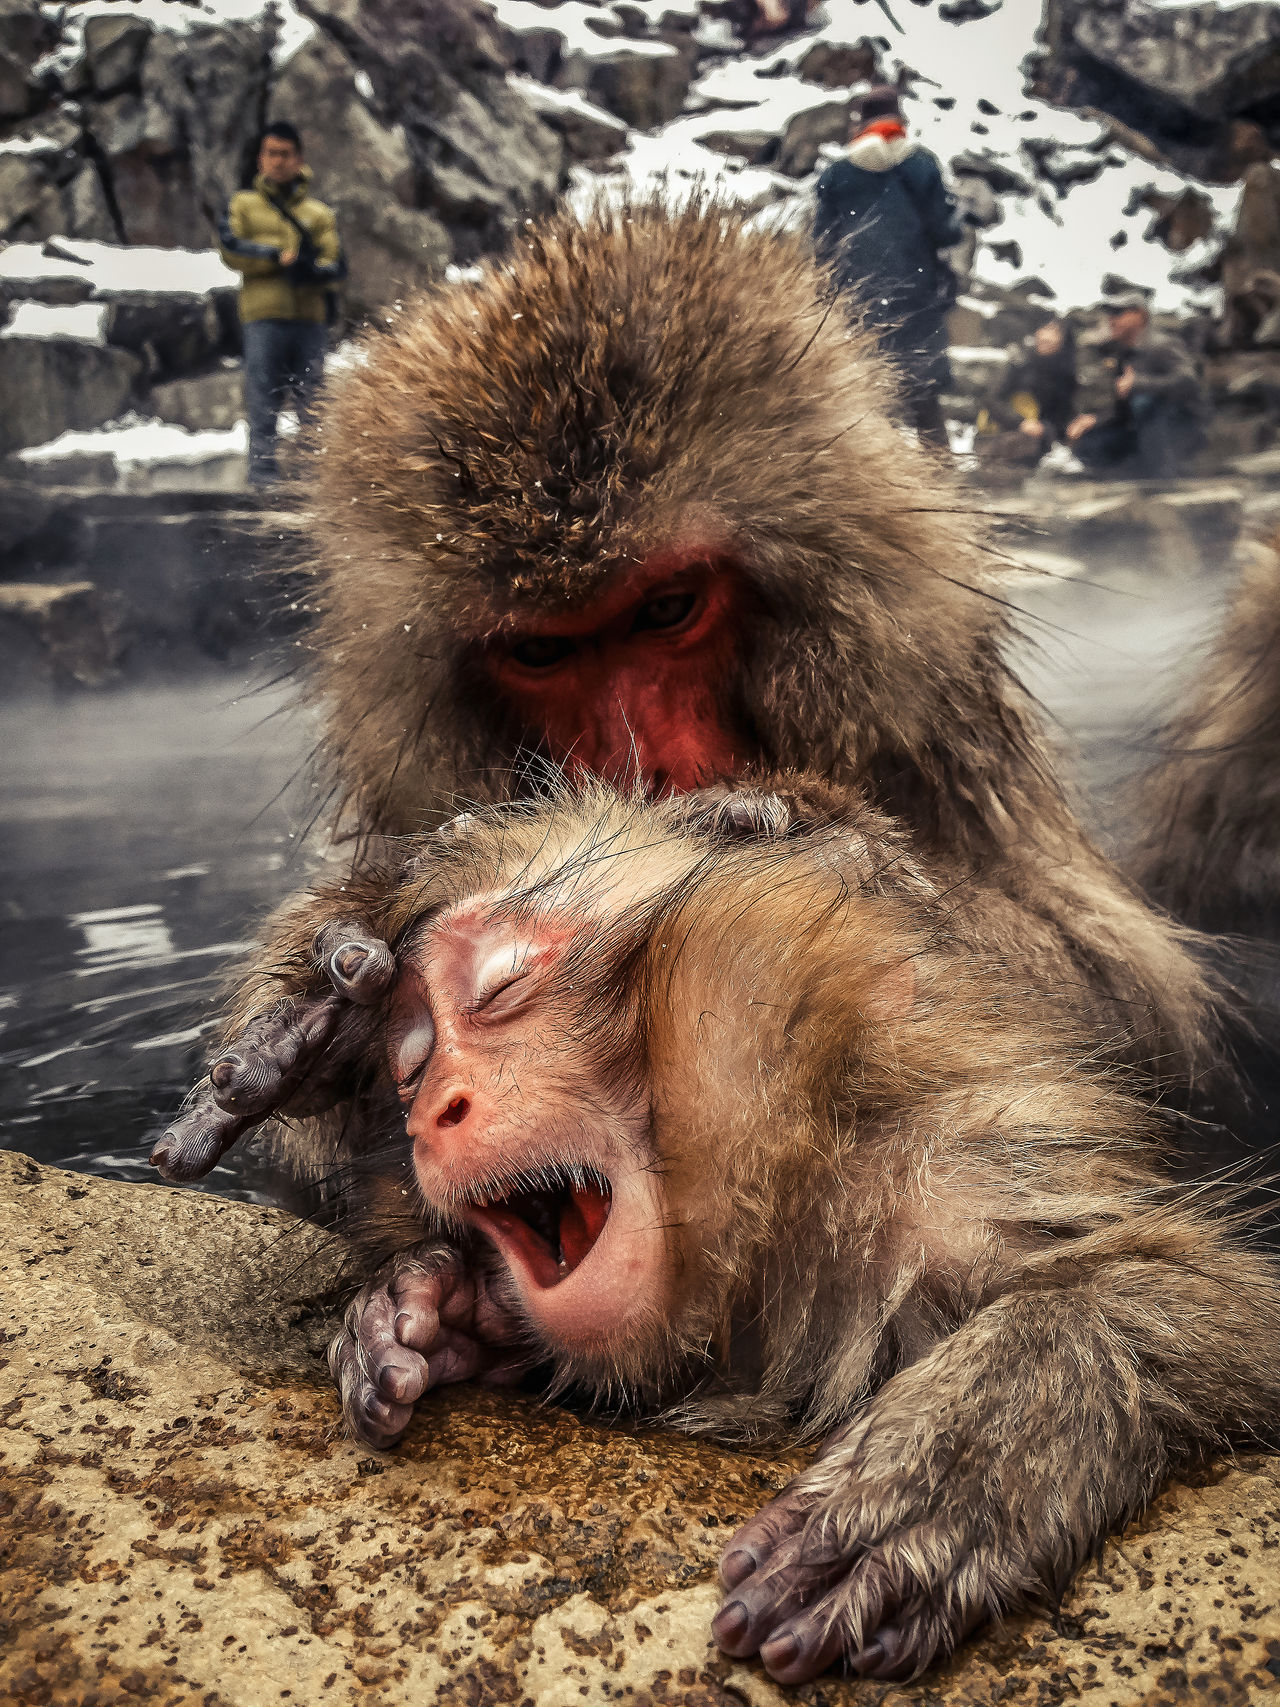 Monkey Snow Monkey Japanese Macaque Onsen Hot Springs Jigokudani Spa Nagano Japan Yawn Iphone 5